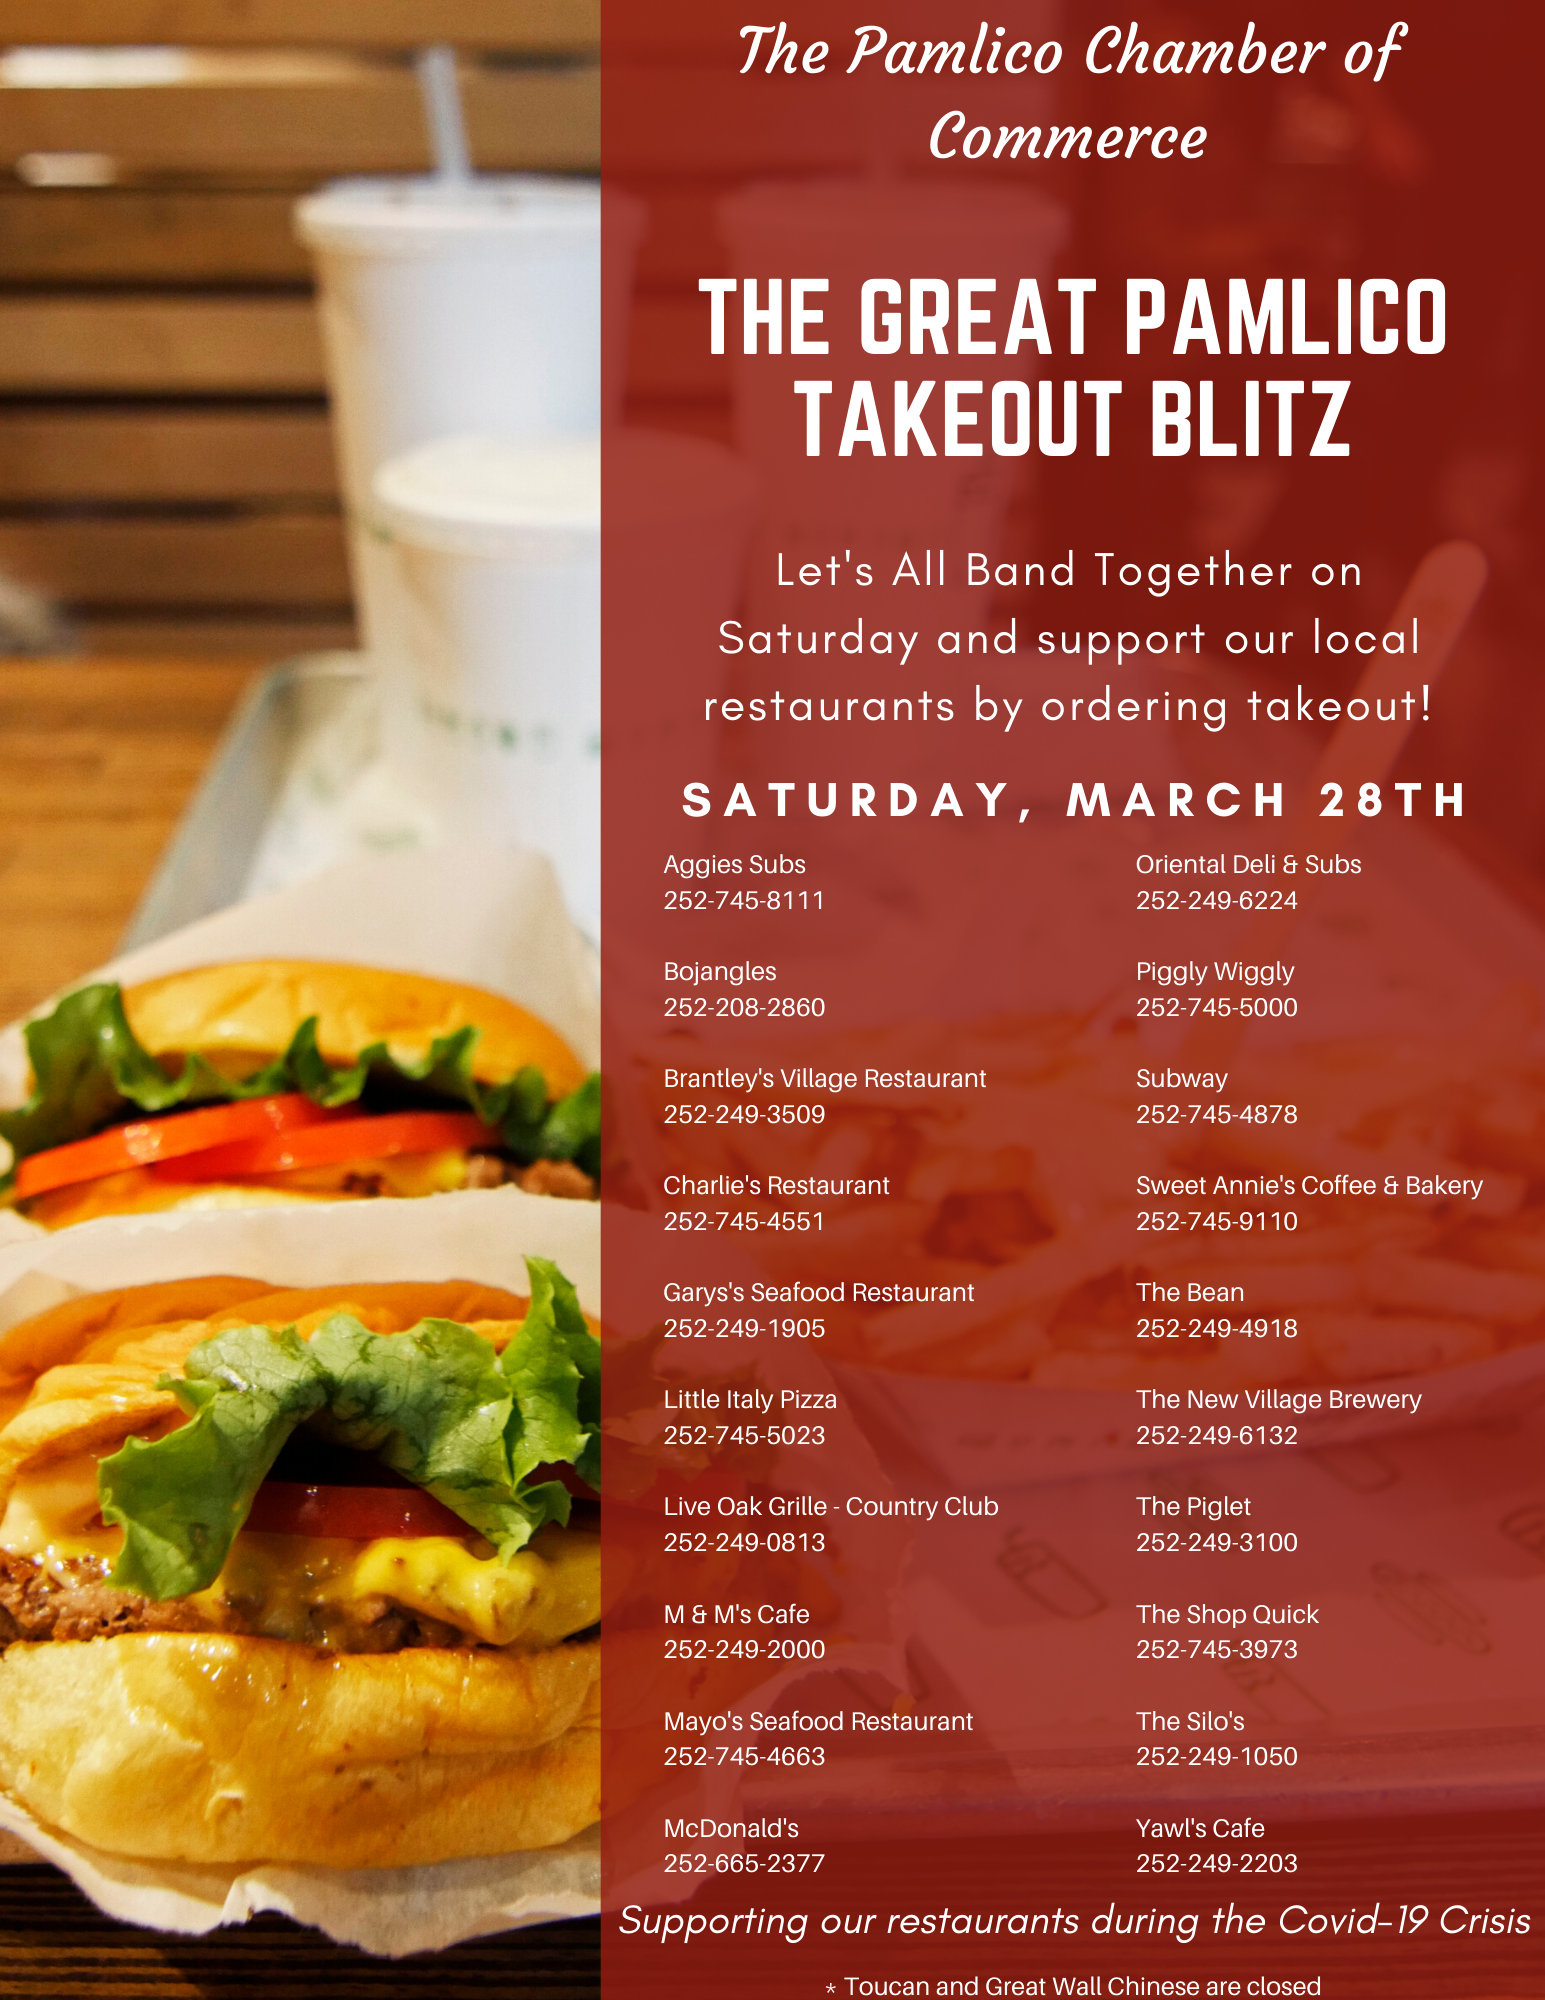 The Great Pamlico Takeout Blitz